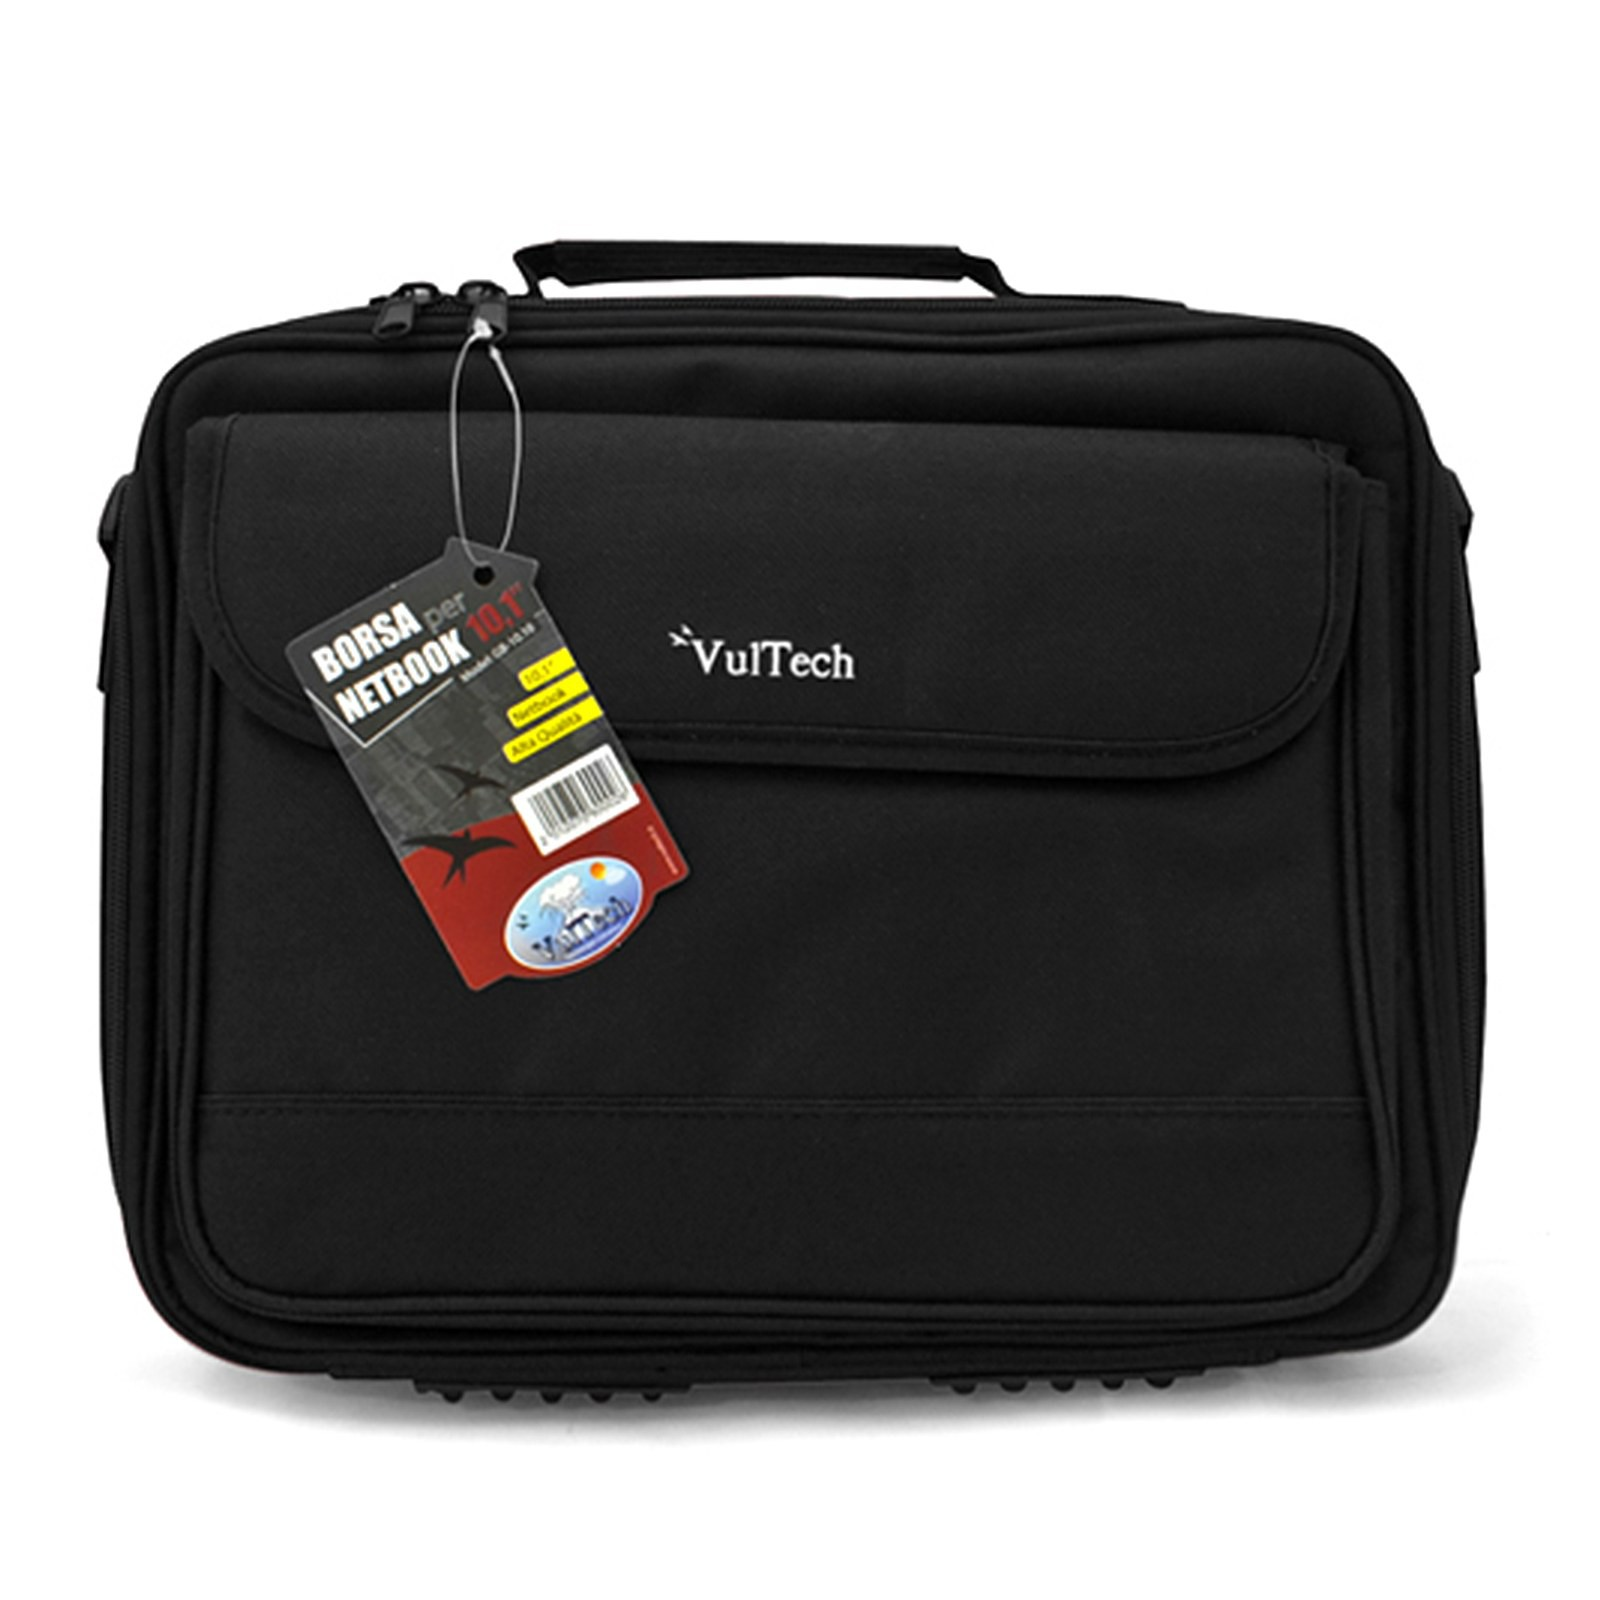 "BORSA CUSTODIA PER NOTEBOOK NETBOOK PORTA PC PORTATILE DA 10"" VULTECH GB-10.10"